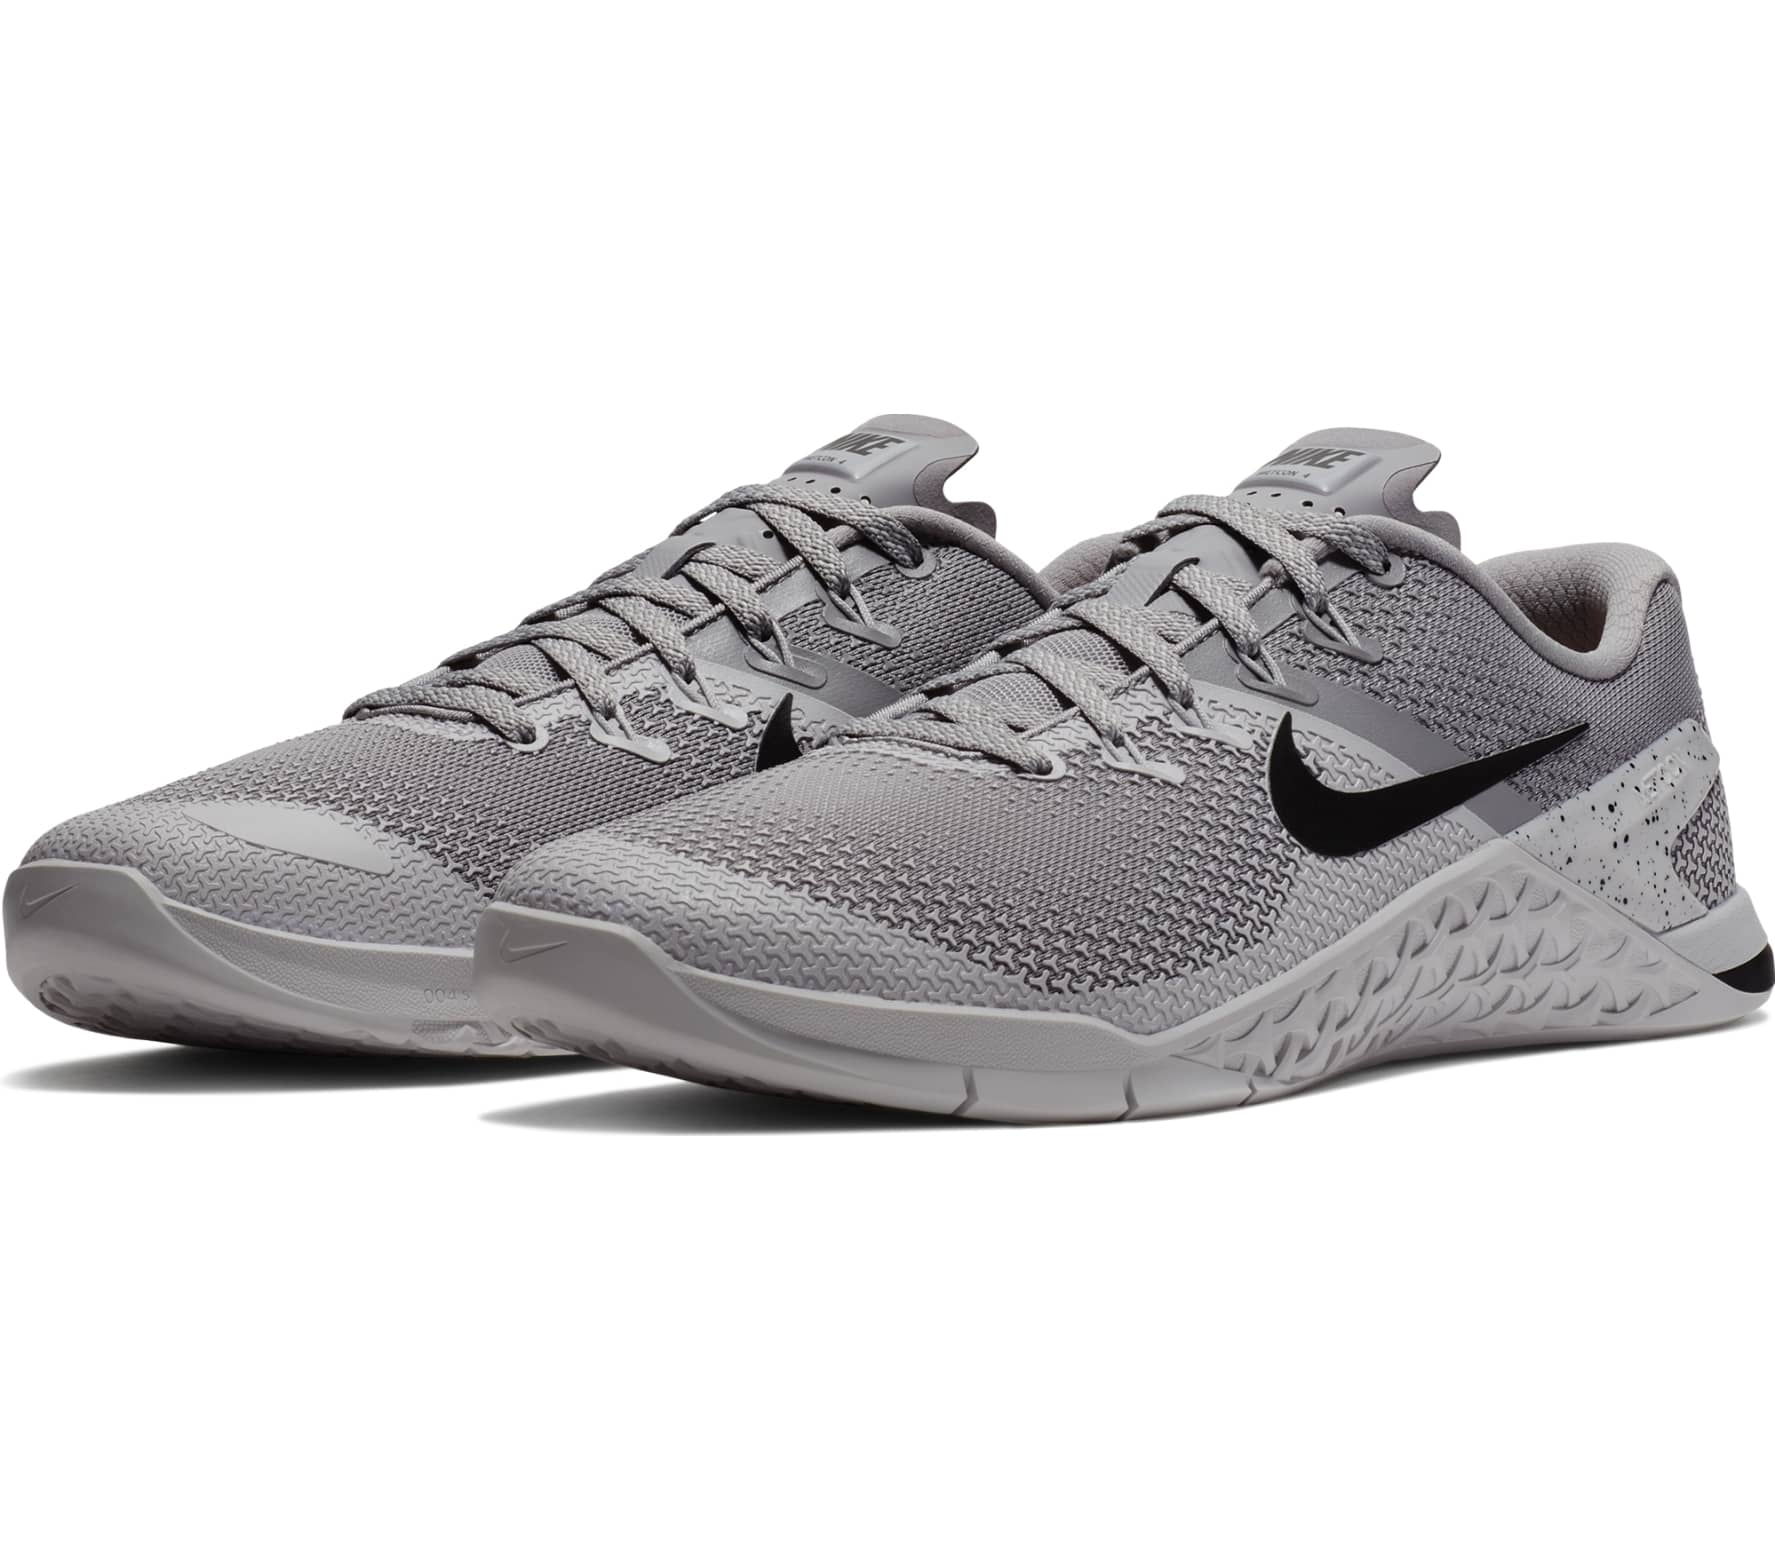 meet 27a77 c796e Nike - Metcon 4 mens training shoes (greywhite)